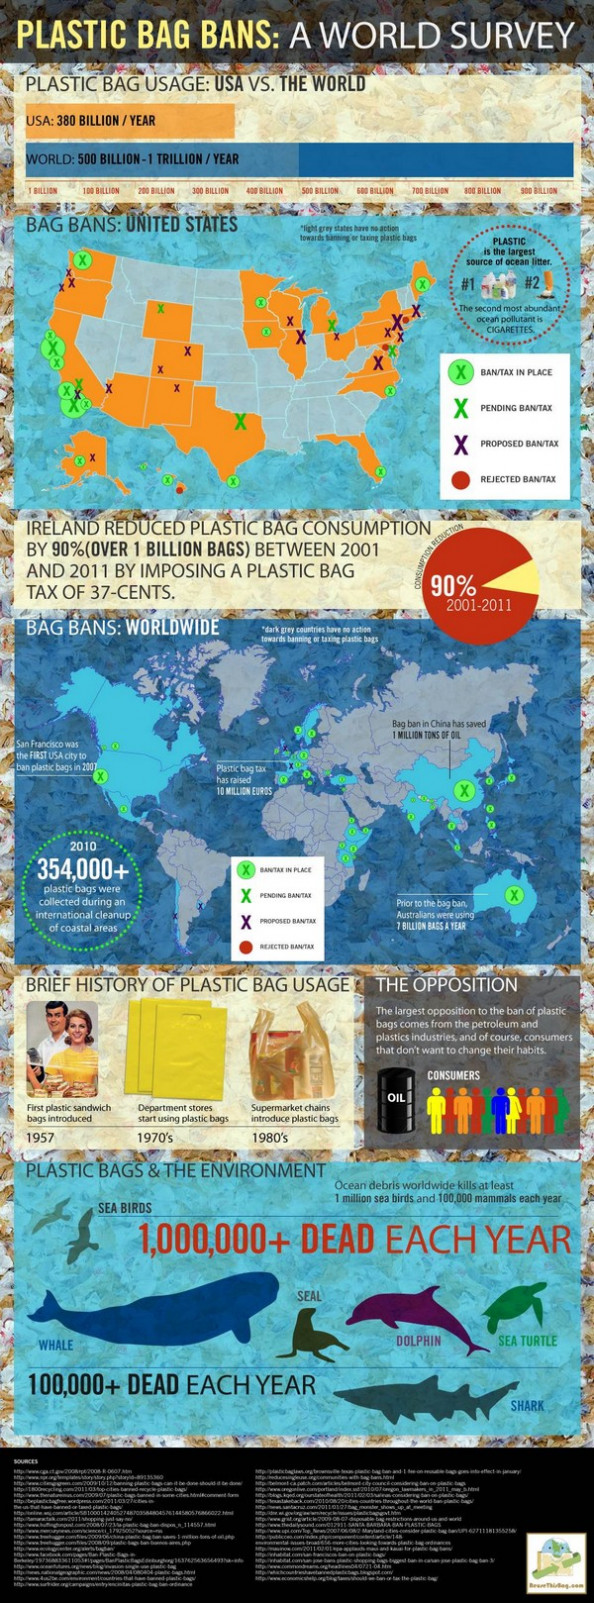 Plastic Bag Bans: A World Survey  Infographic